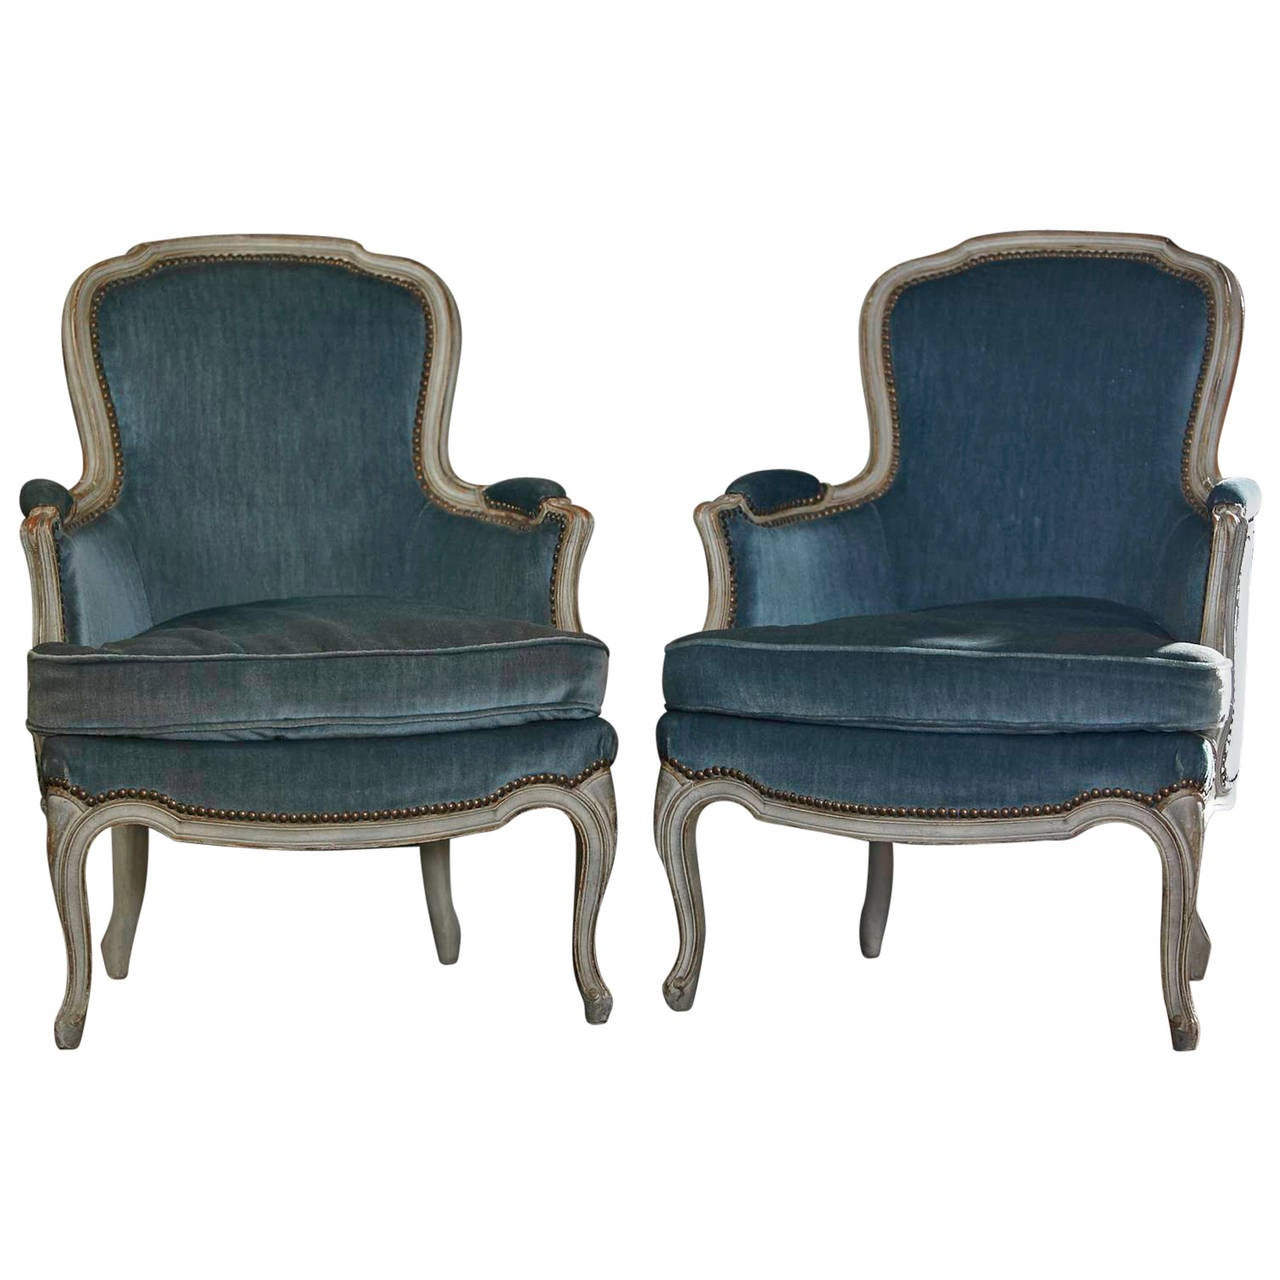 pair of antique louis xv style fauteuils france ca 1900. Black Bedroom Furniture Sets. Home Design Ideas